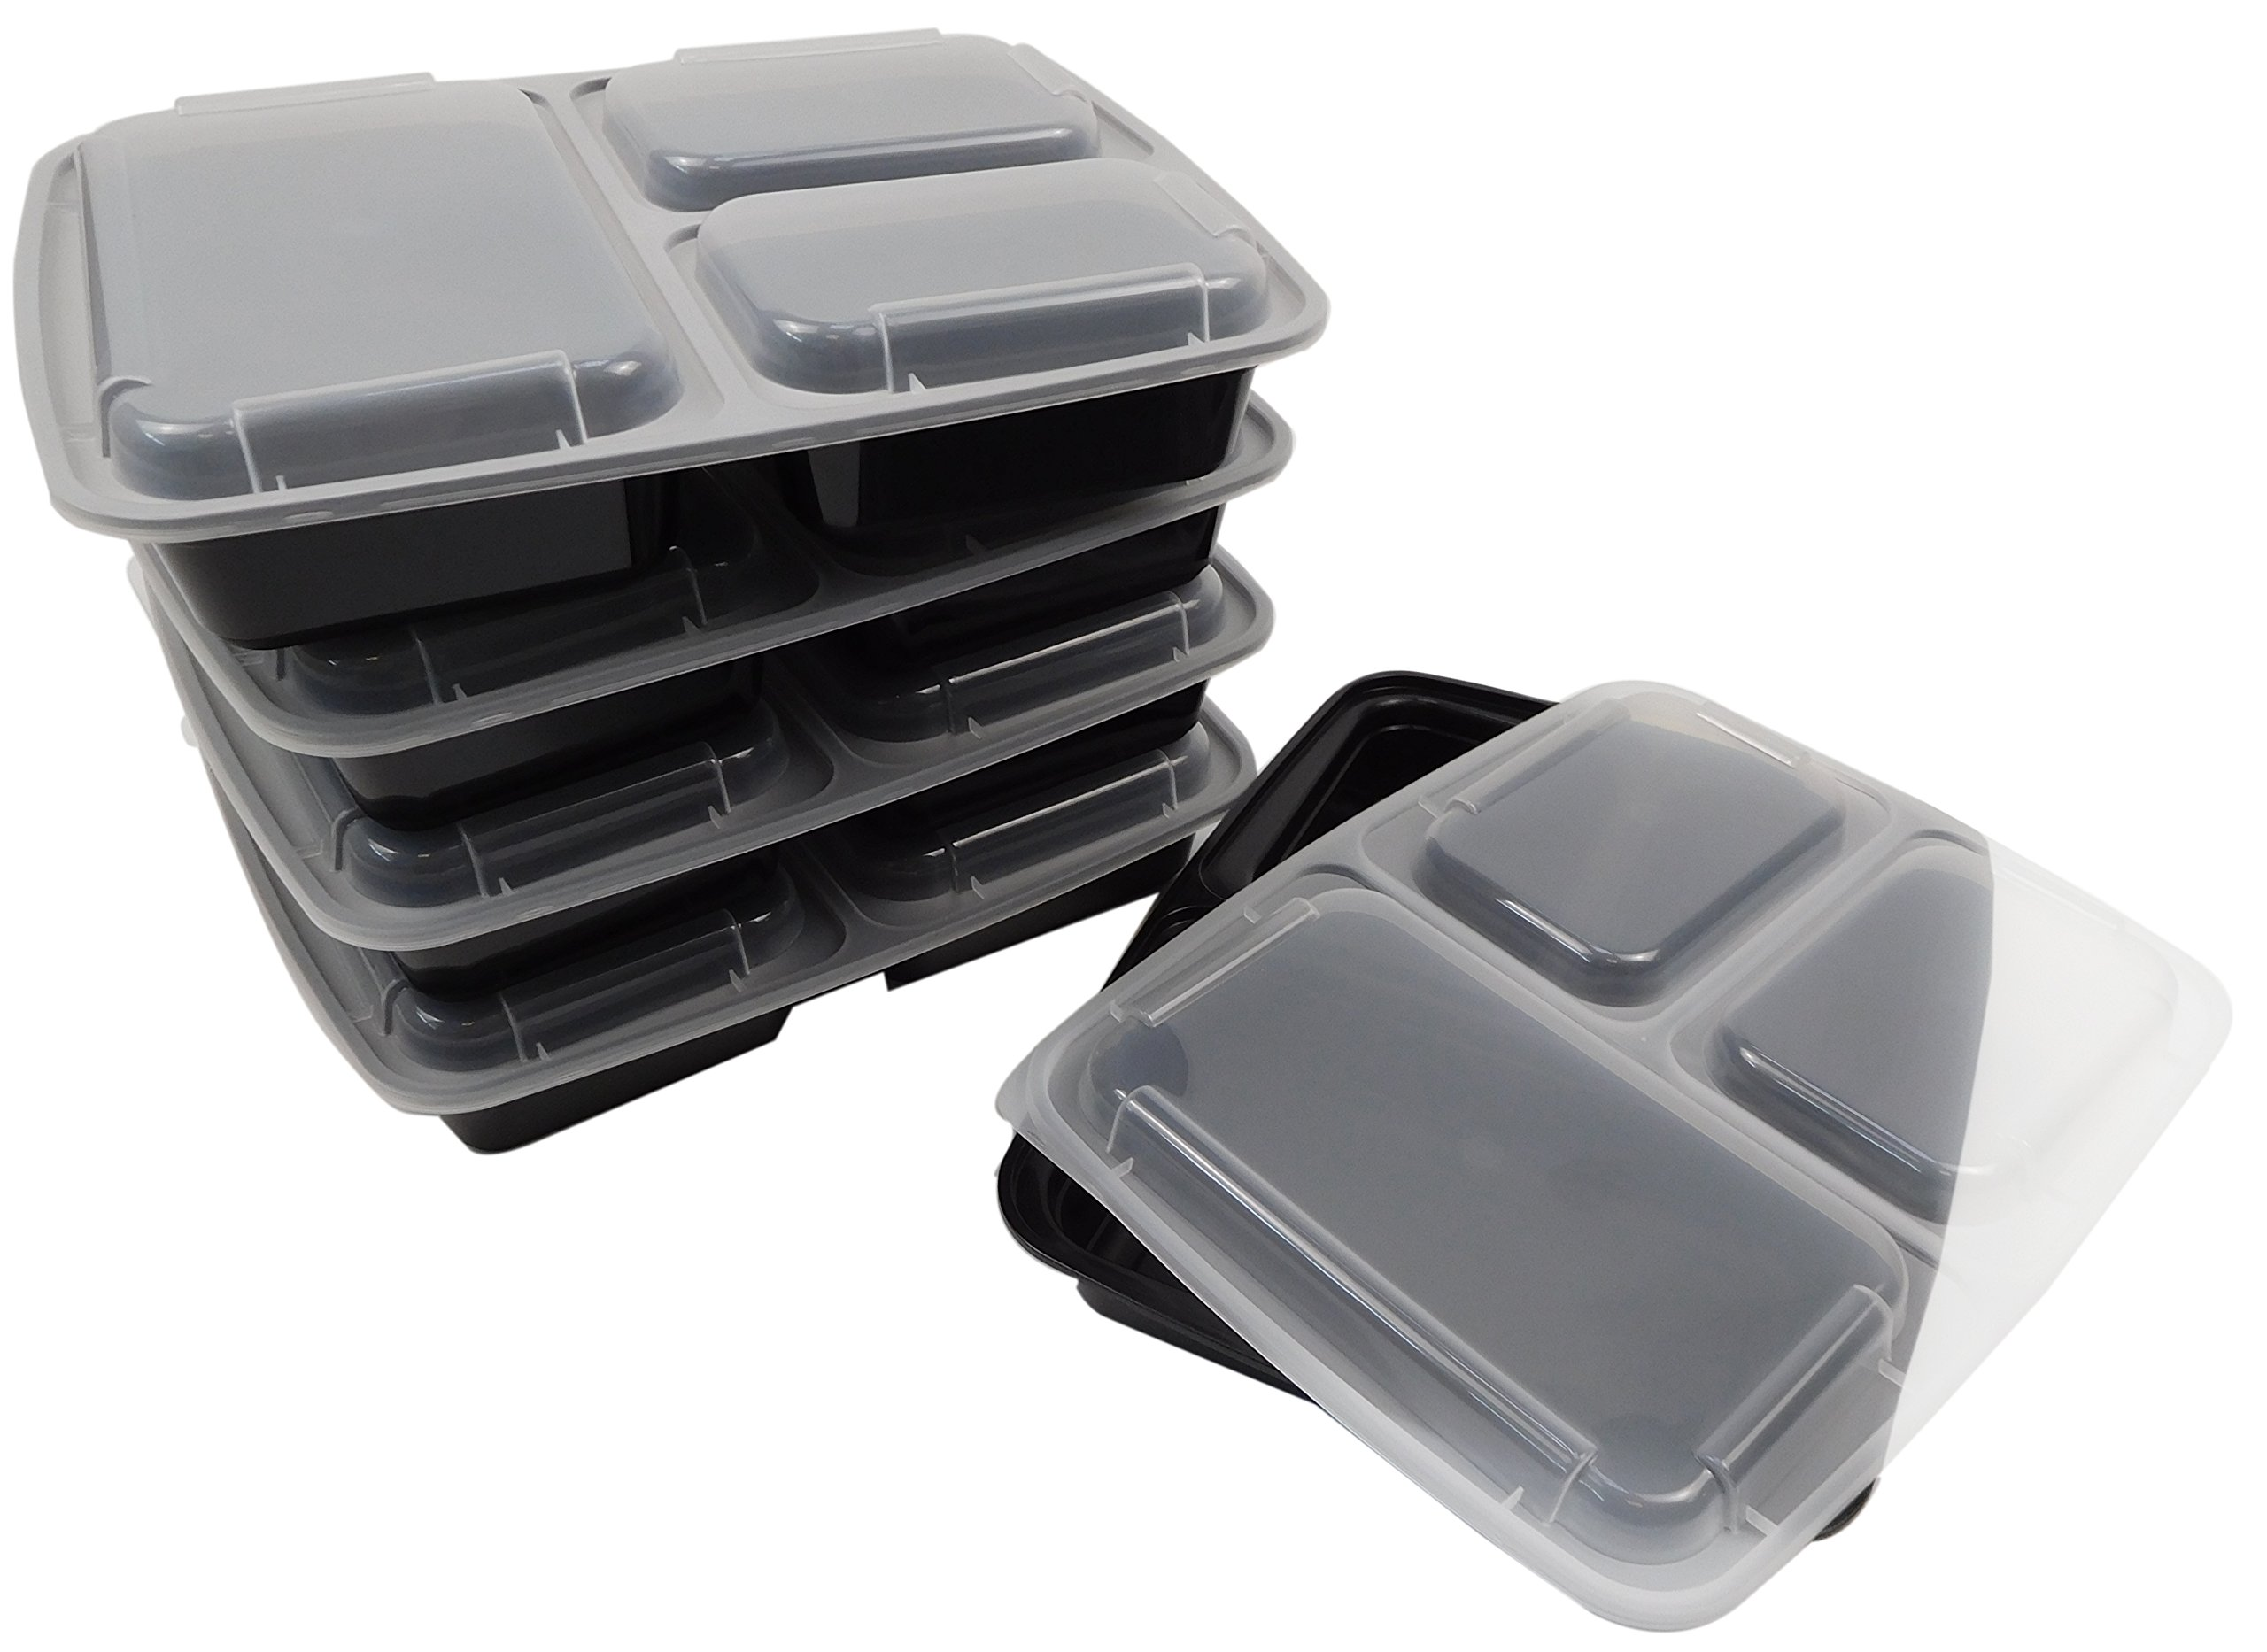 Table To Go 240-Pack Bento Lunch Boxes with Lids (3 Compartment/ 36 oz) | Microwaveable, Dishwasher & Freezer Safe Meal Prep Containers | Reusable Dish Set for Prepping, Portion Control & More (Black)